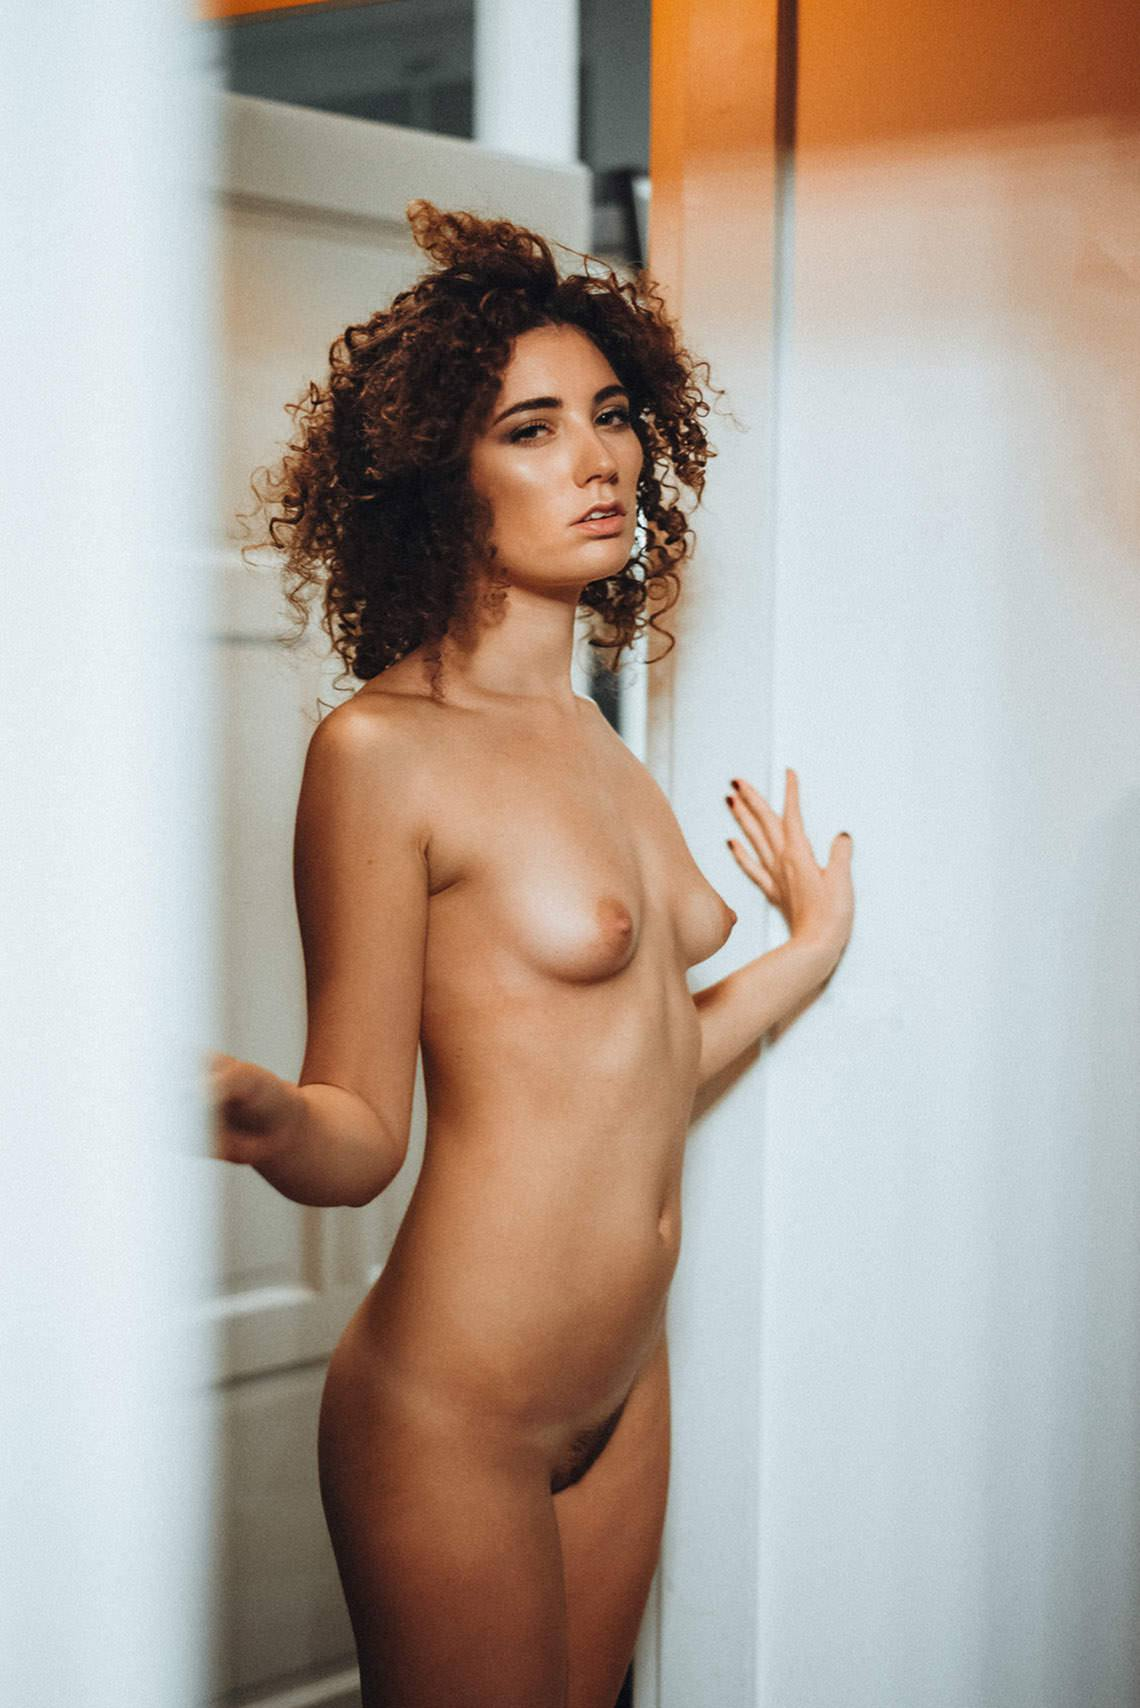 Desiree Timm – Sexy Body In Naked Photoshoot By Dennis Kilch (nsfw) 0013